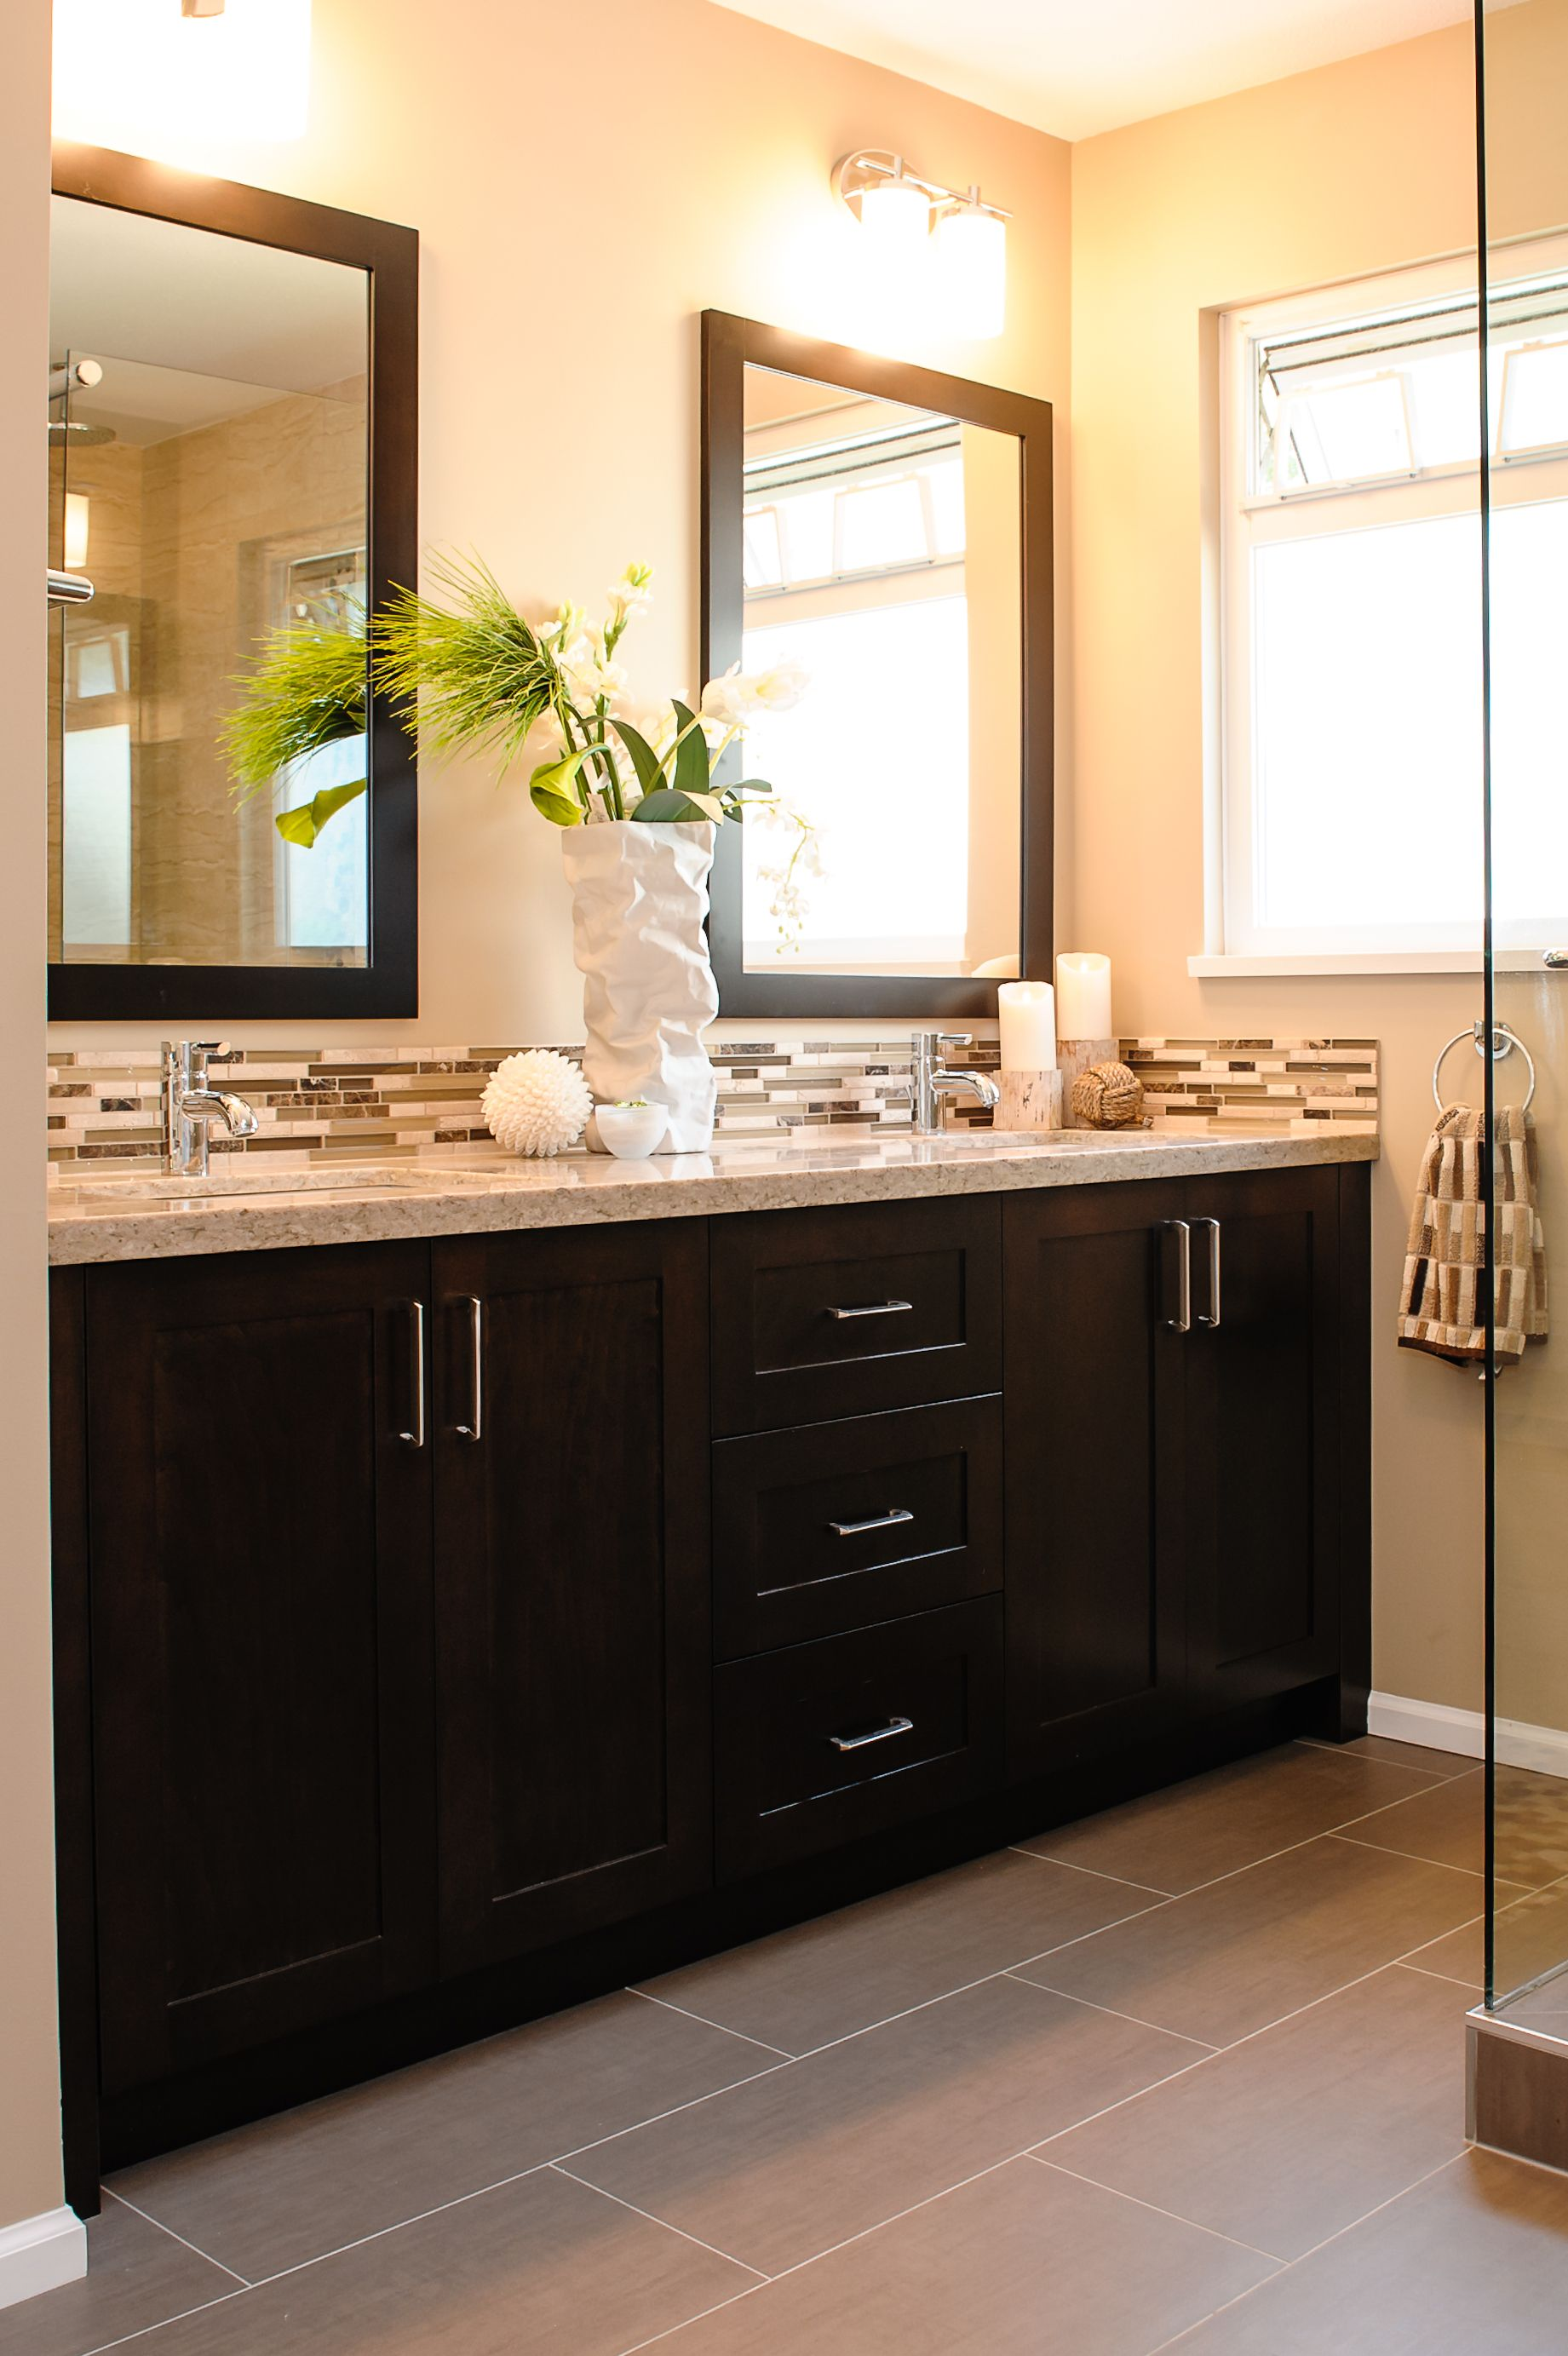 Home The Spotted Frog Bathrooms Remodel Earth Tones Bathroom